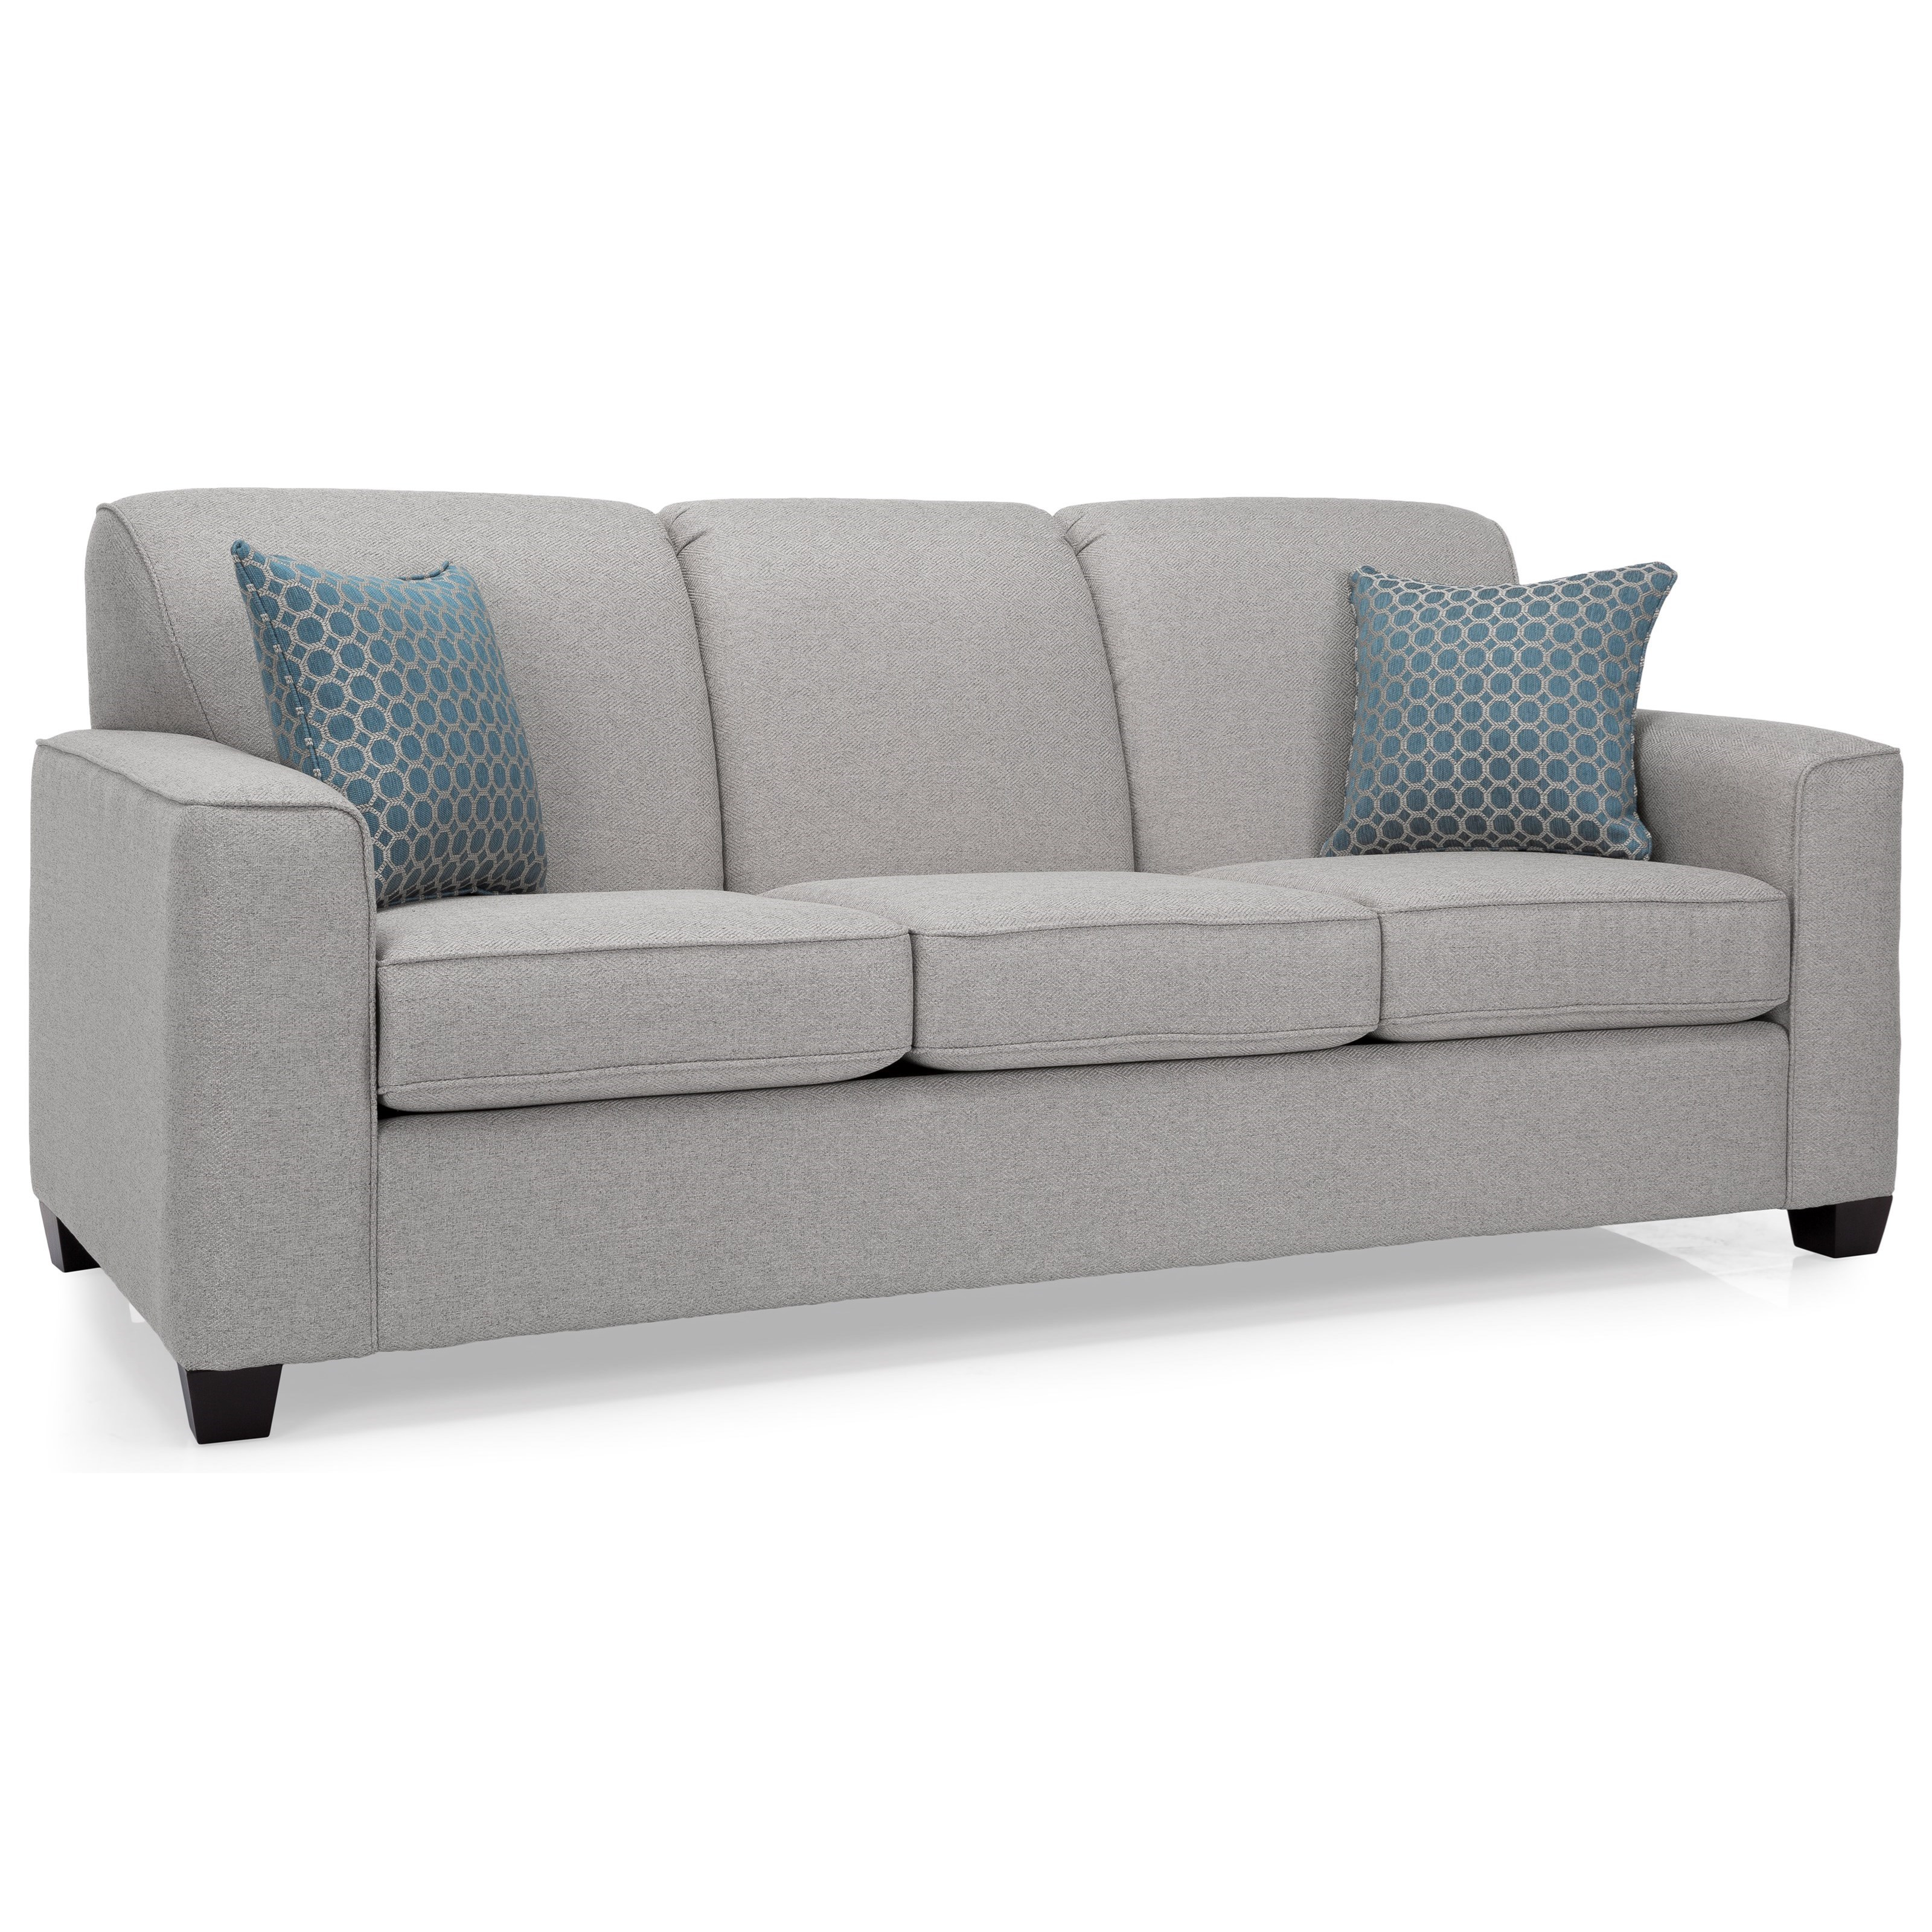 2705 Sofa by Decor-Rest at Rooms for Less